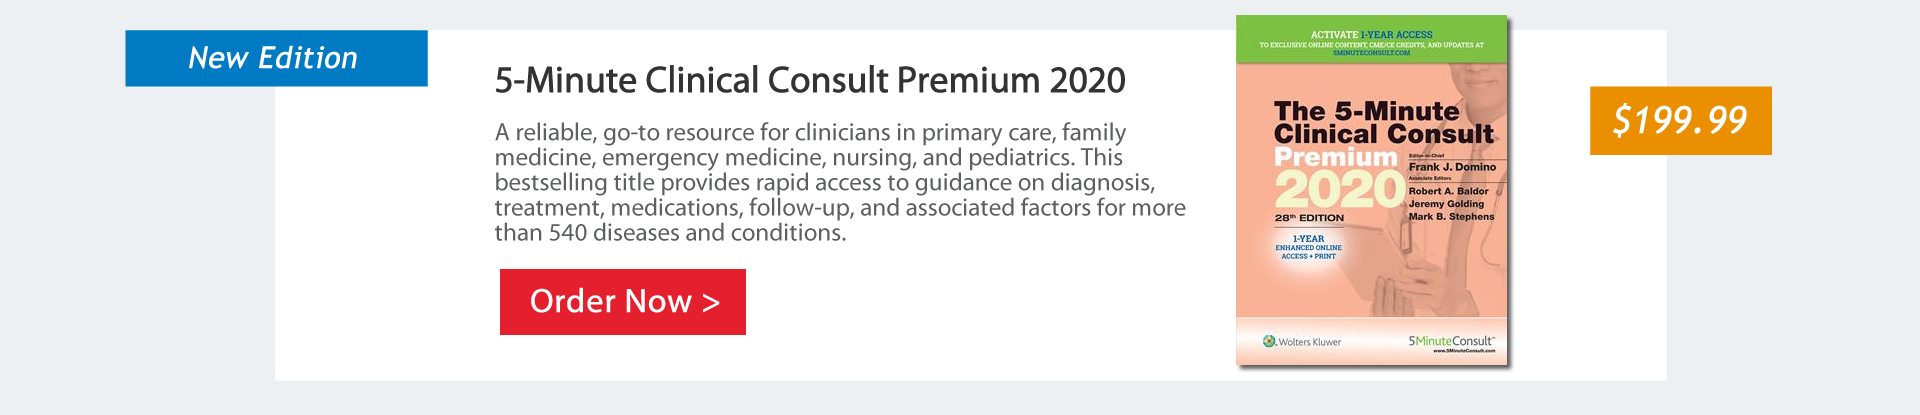 Physician Assistant Resources - Wolters Kluwer